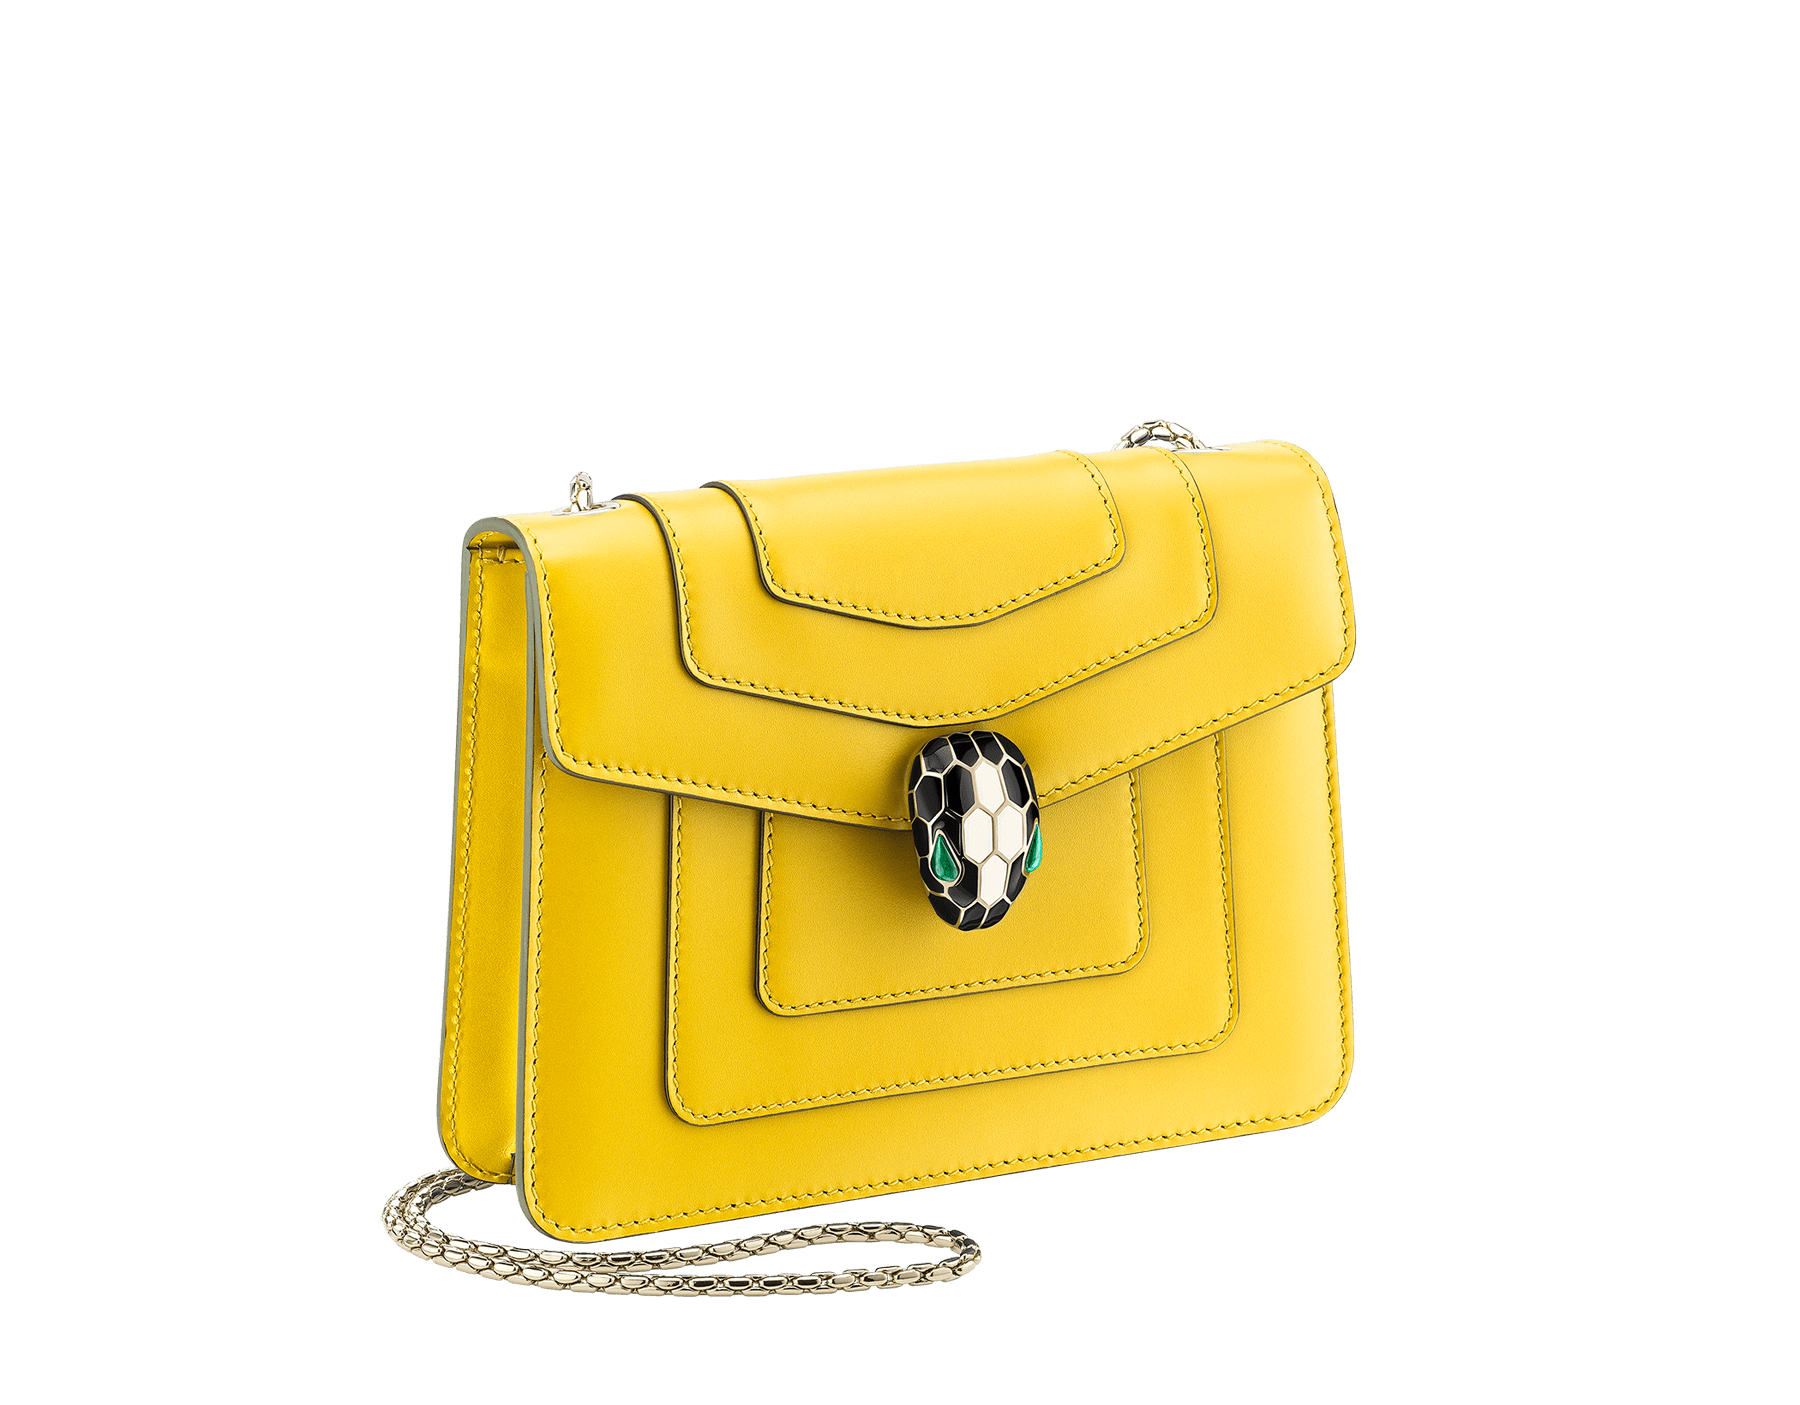 """Serpenti Forever"" crossbody bag in daisy topaz calf leather. Iconic snakehead closure in light gold plated brass enriched with black and white agate enamel, and green malachite eyes. 289650 image 2"